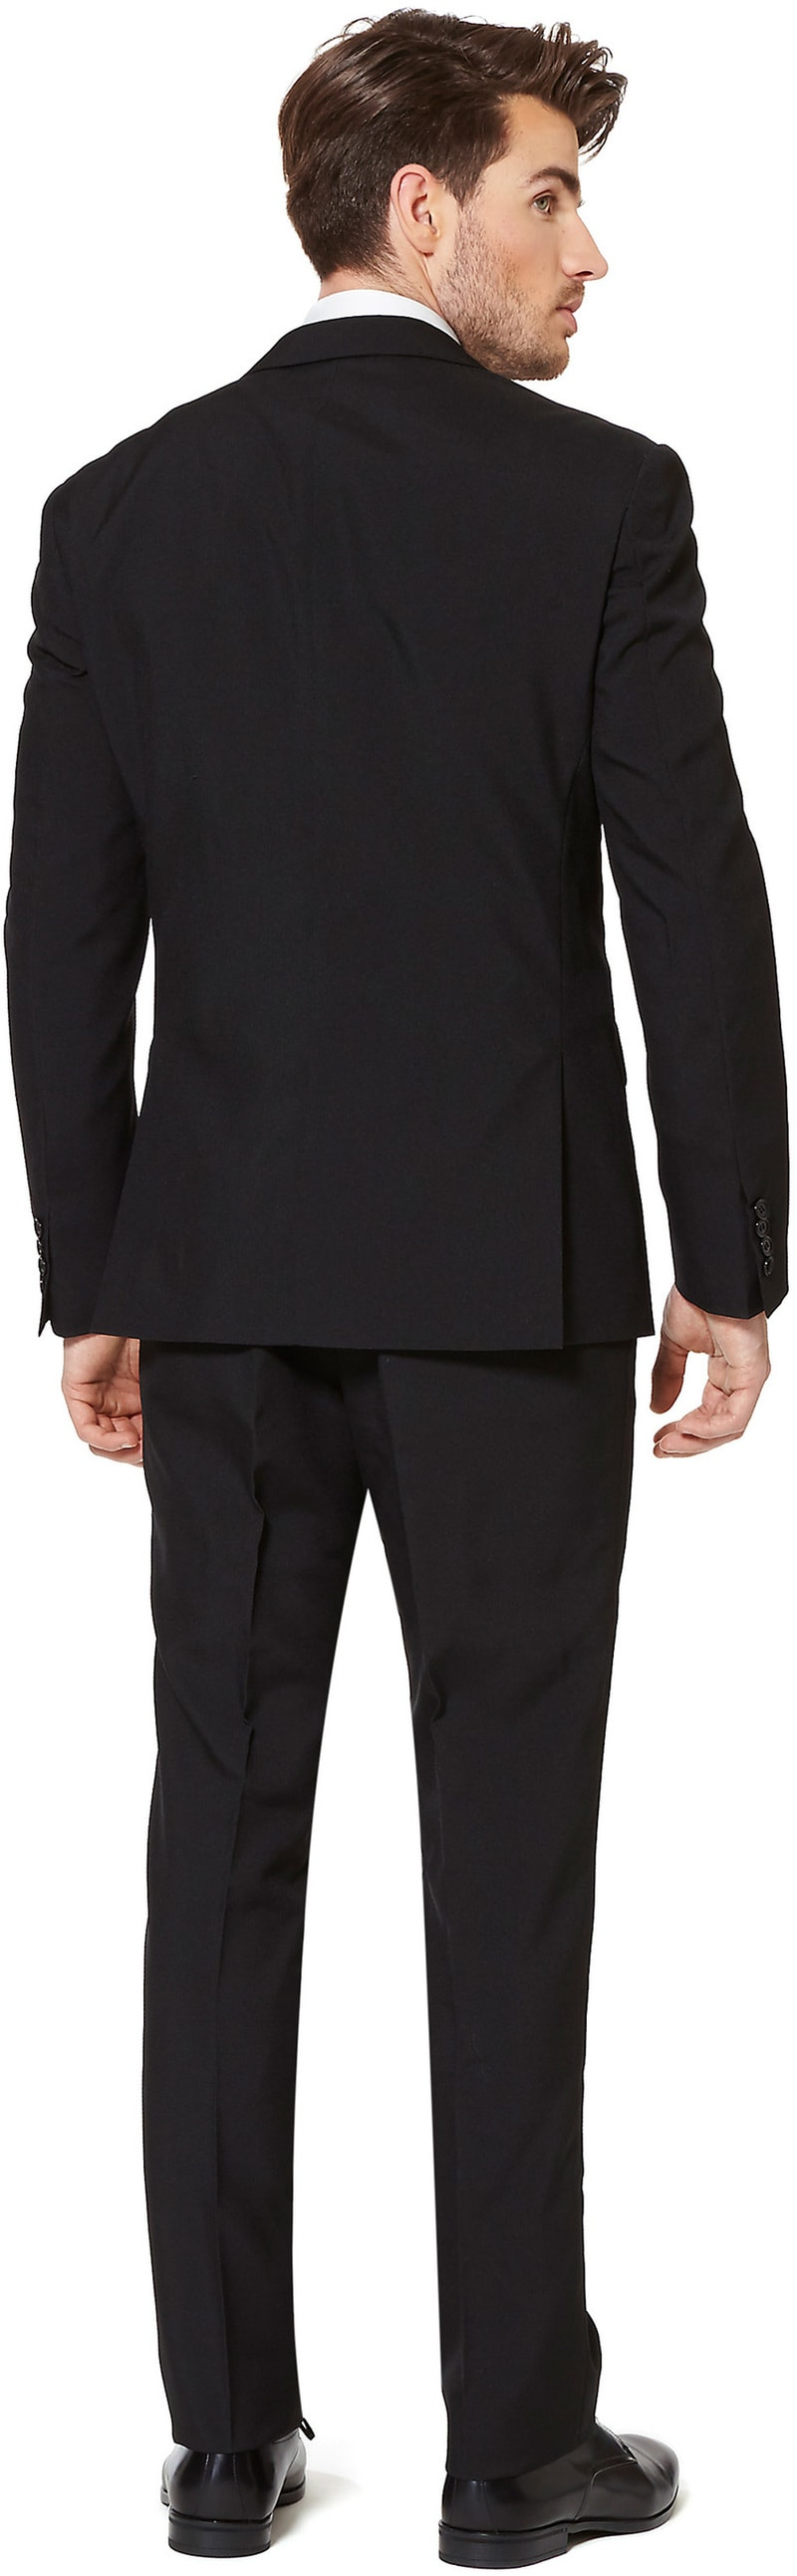 OppoSuits Black Knight Suit photo 1